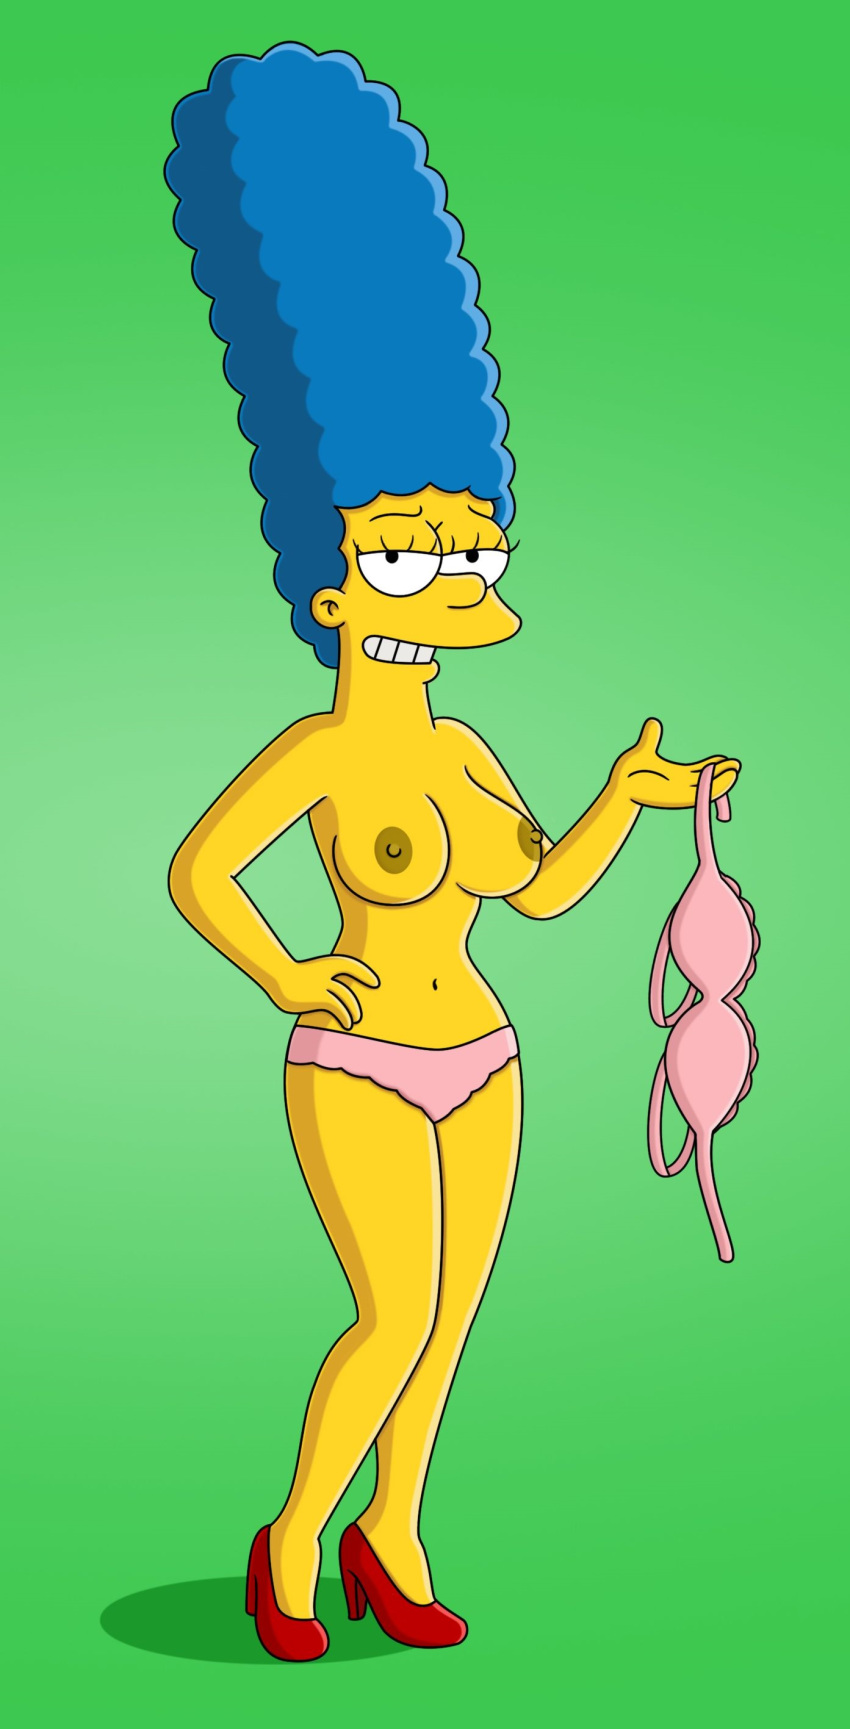 Marge simpson hot naked, for your russian lady